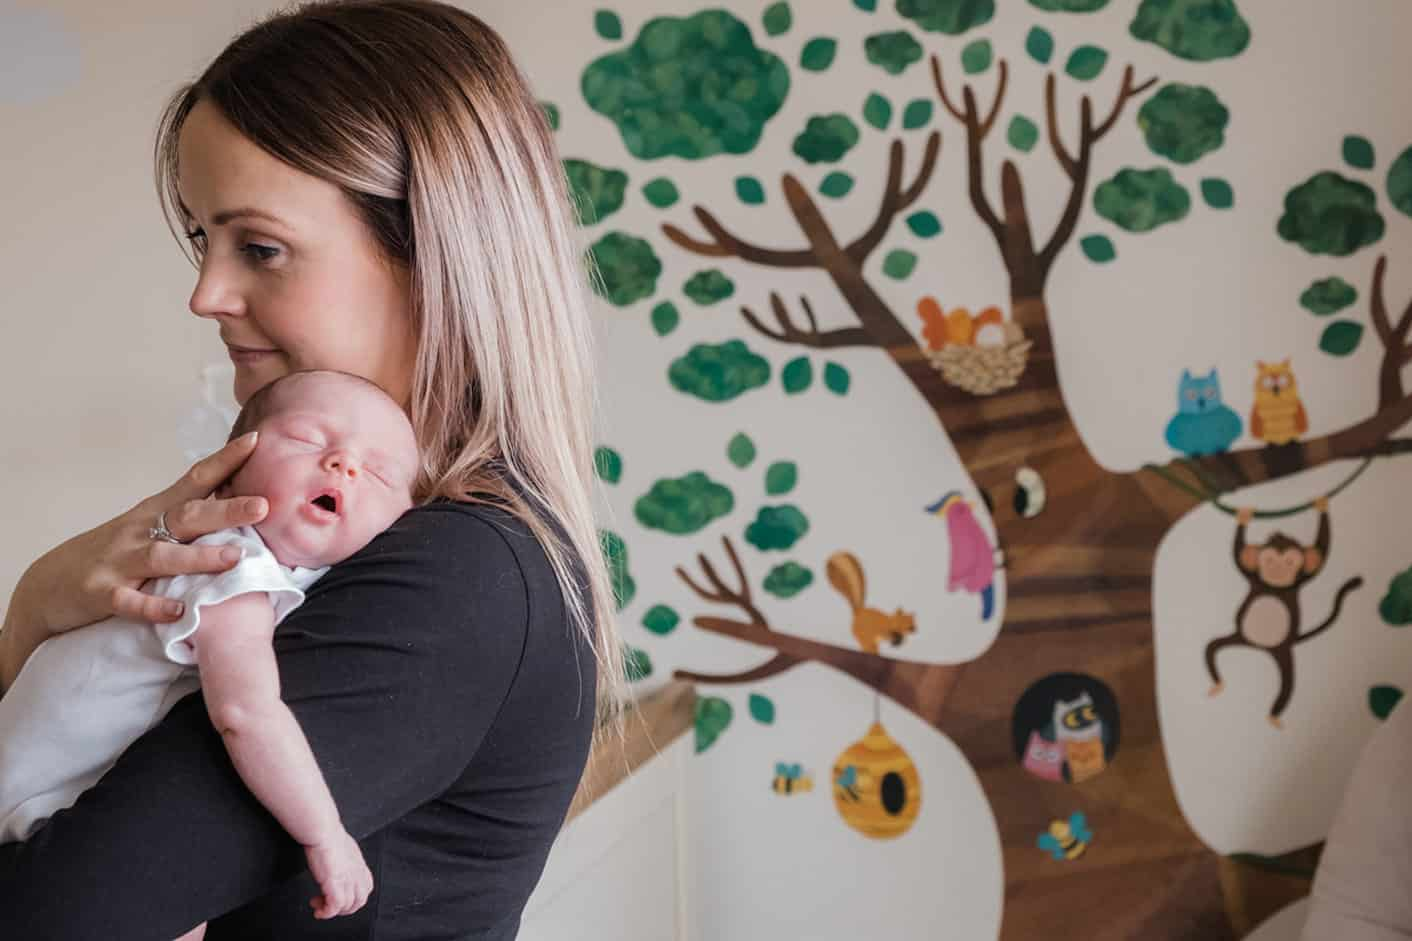 newborn photos with mum and baby